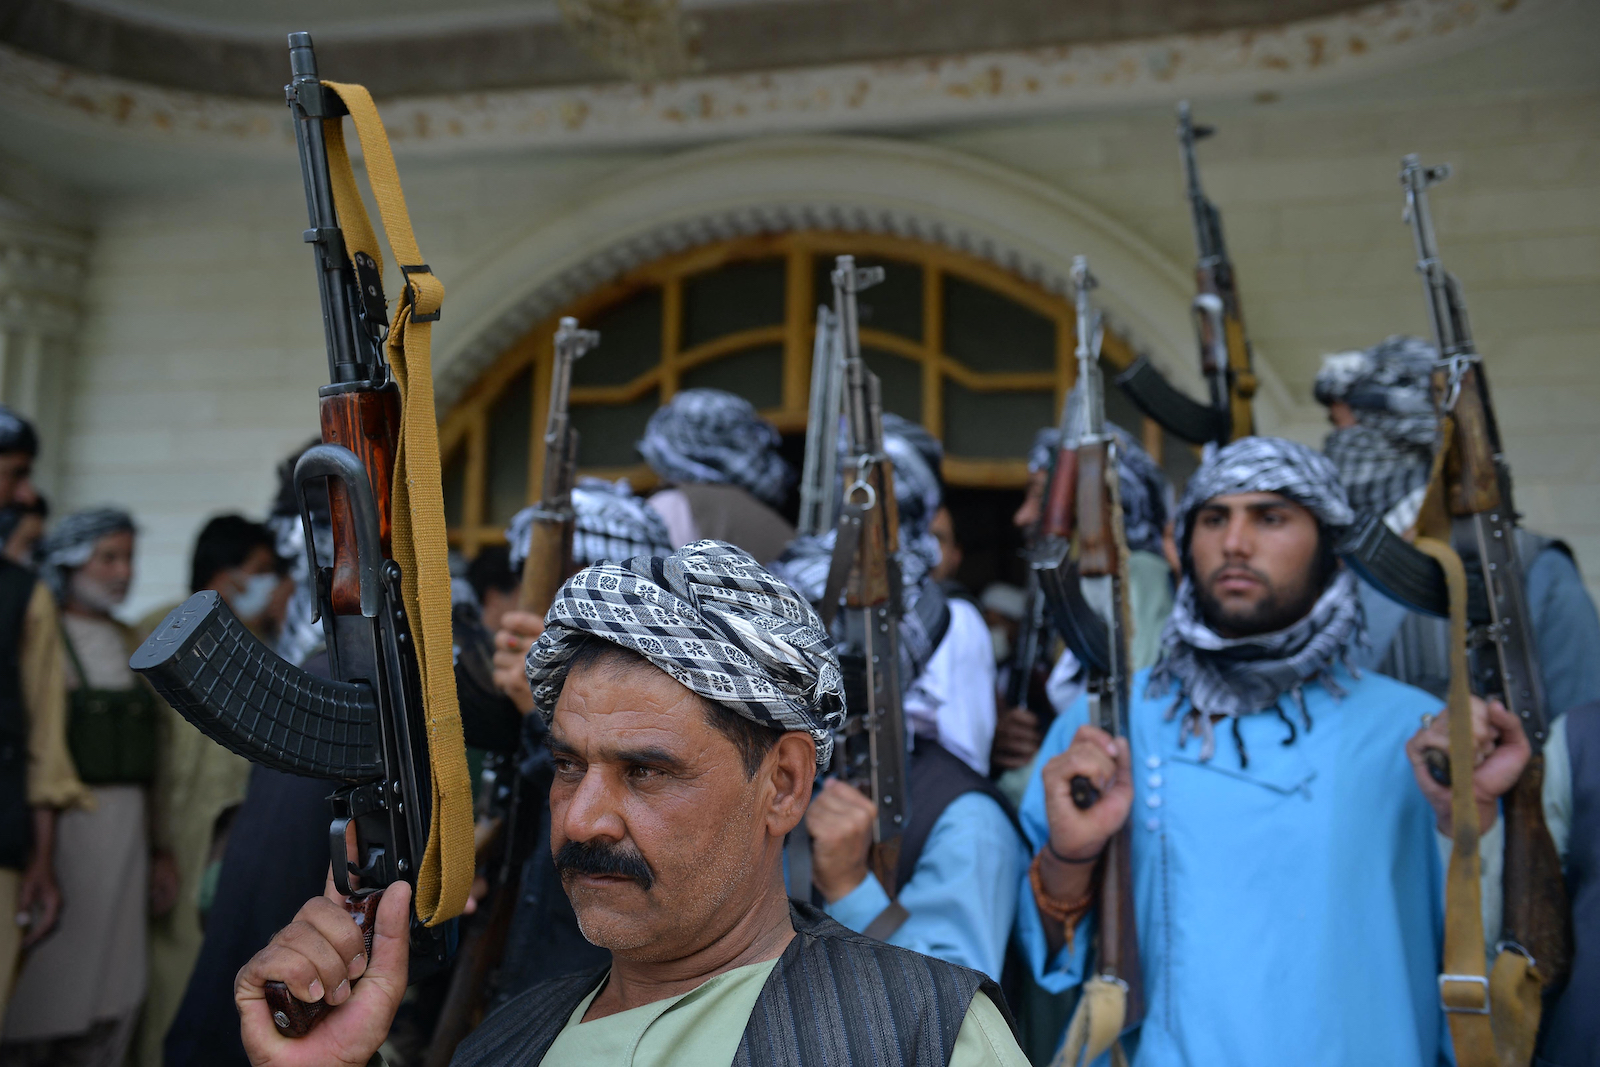 Afghan militia gather with their weapons to support Afghanistan security forces against the Taliban, in Afghan warlord and former Mujahideen leader Ismail Khan's house in Herat on July 9, 2021. Photo: AFP / Hoshang Hasimi